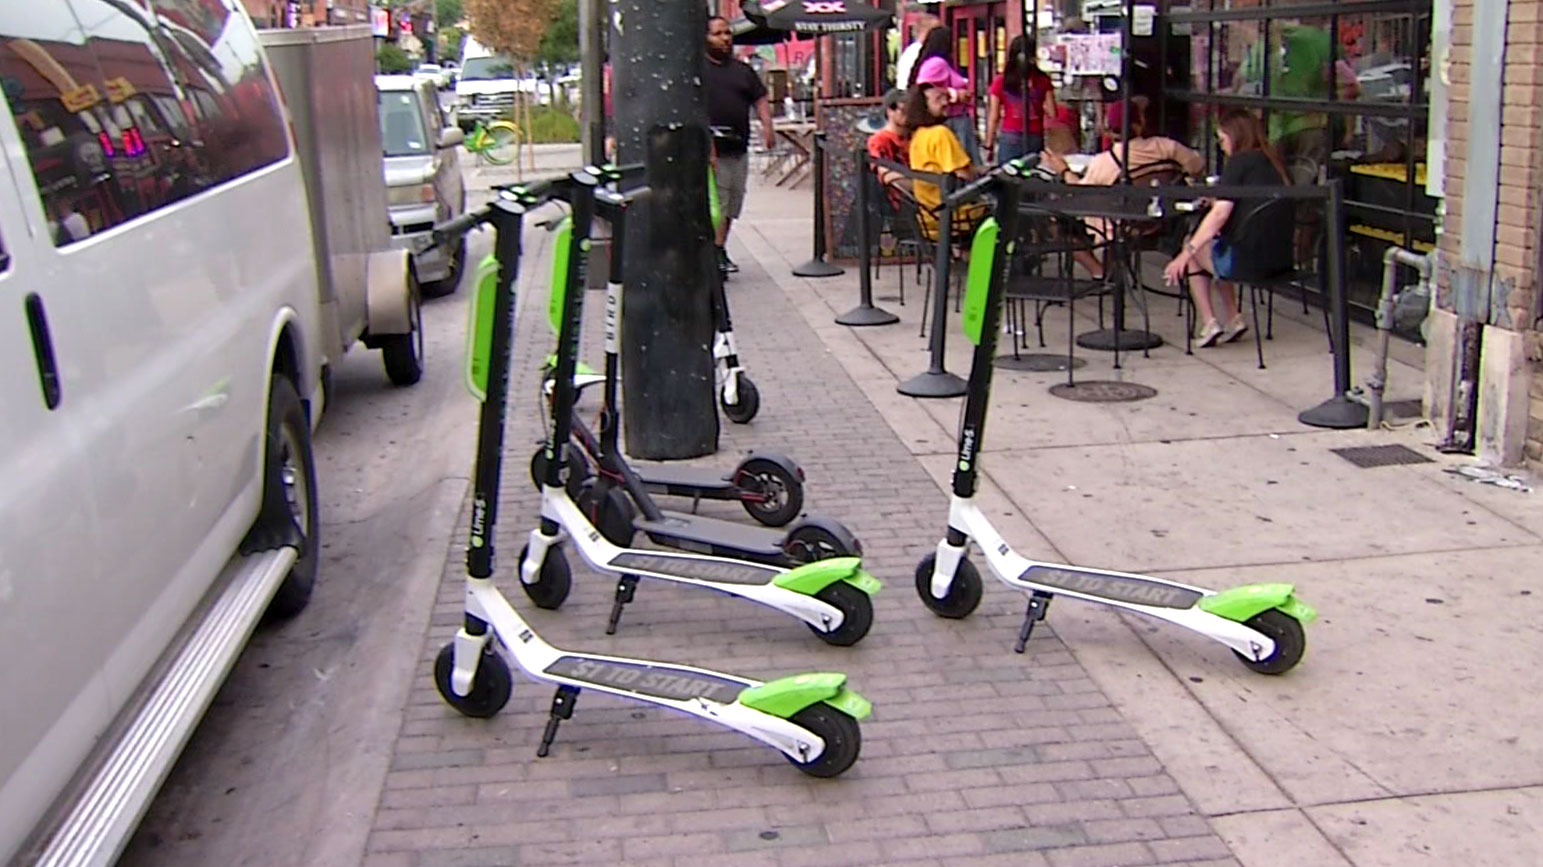 Lime-S dockless rental scooters